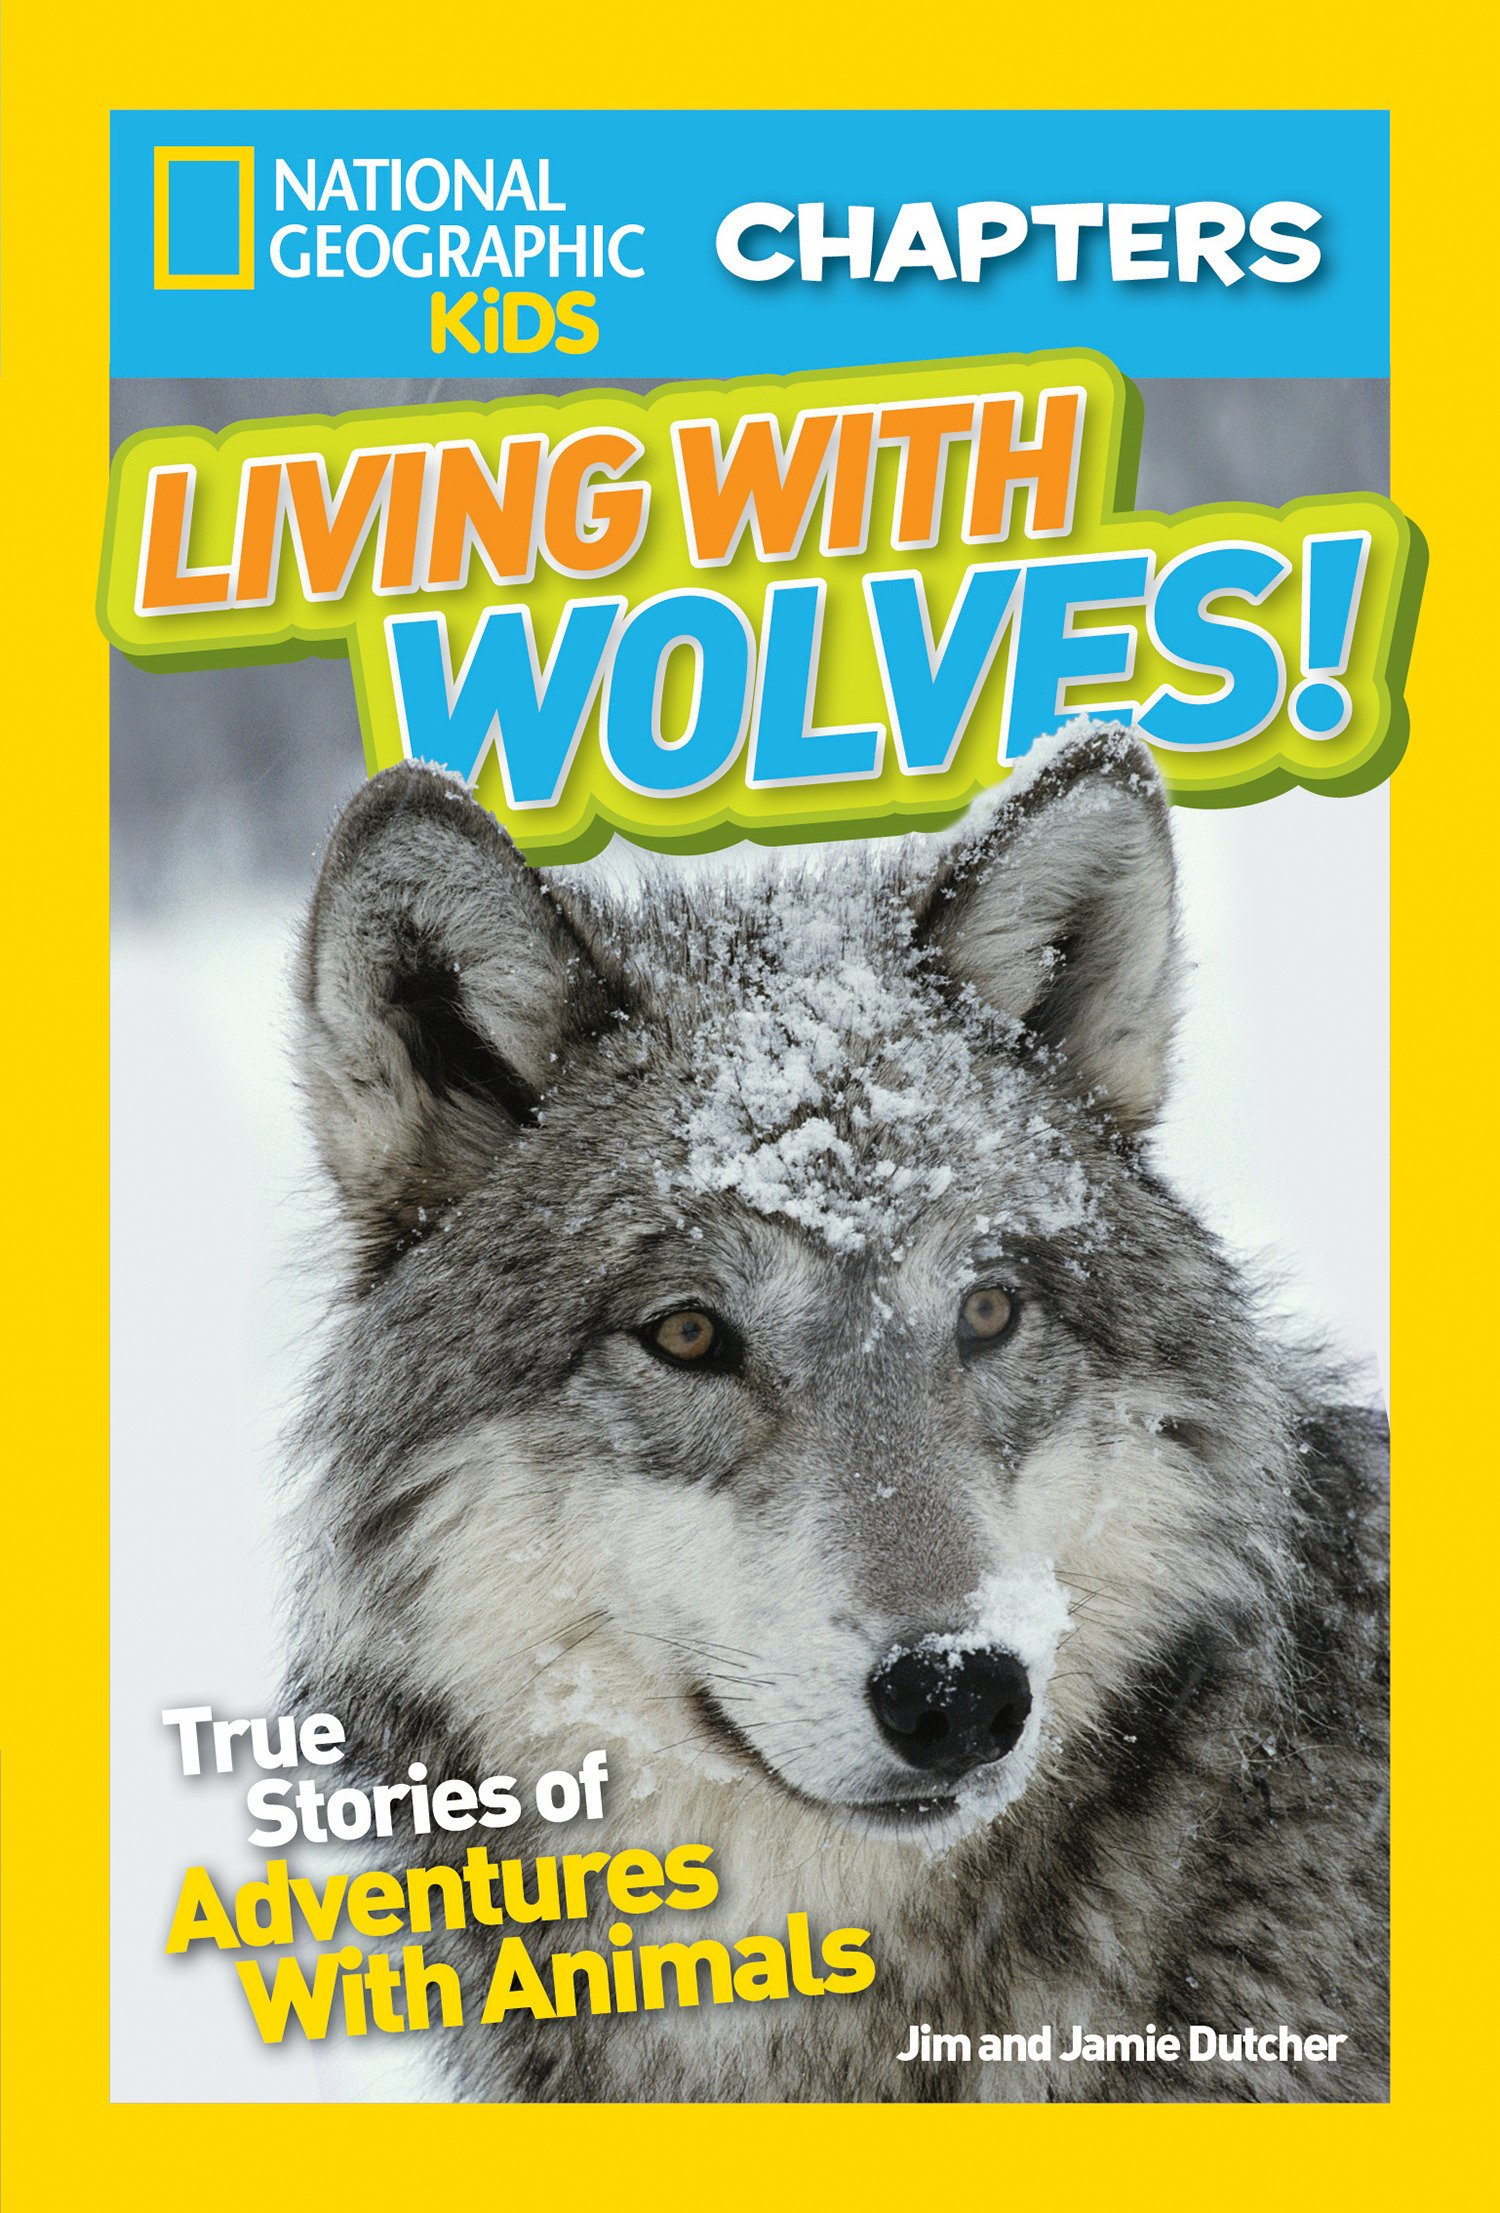 Over wolf giveaways for kids